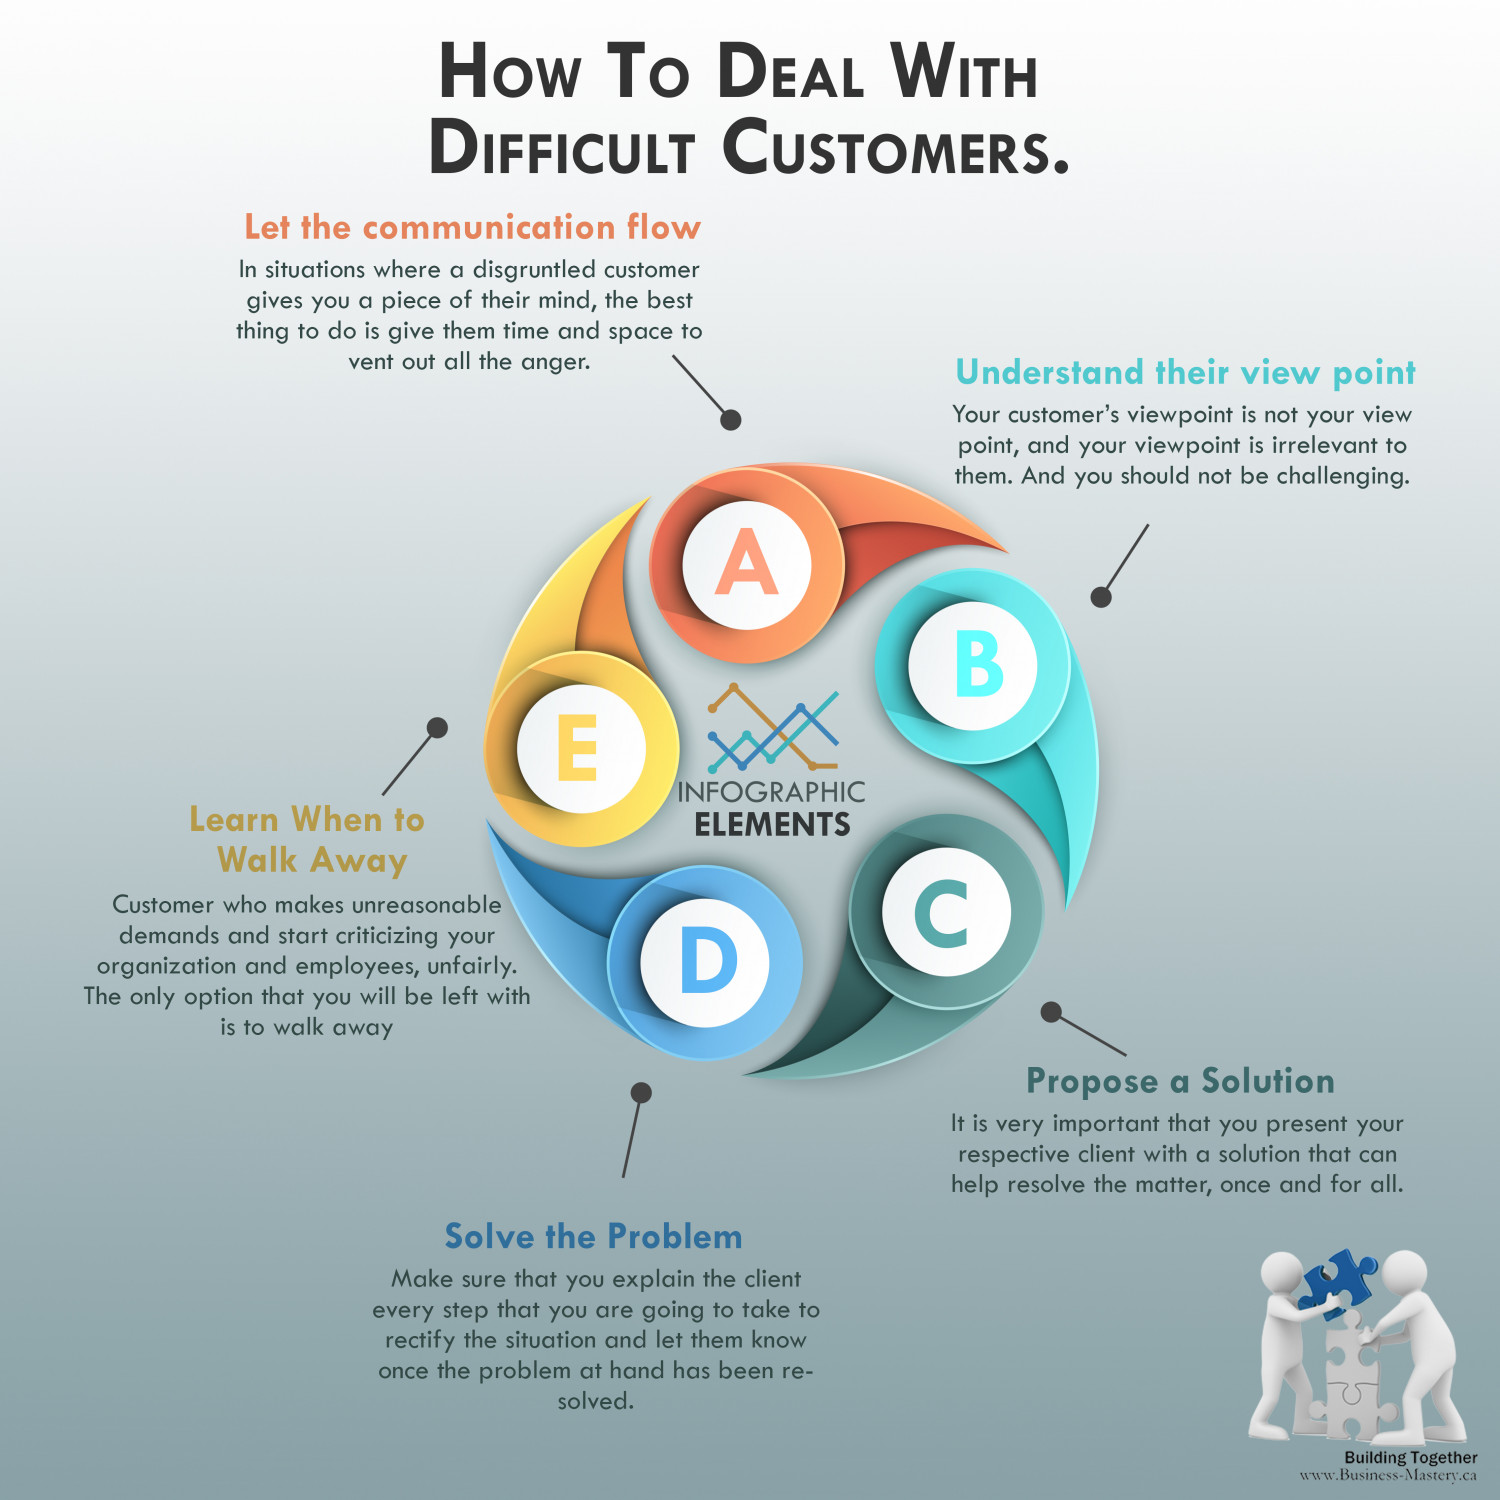 Dealing With Difficult Clients: Best Ways To Deal With Difficult Customers